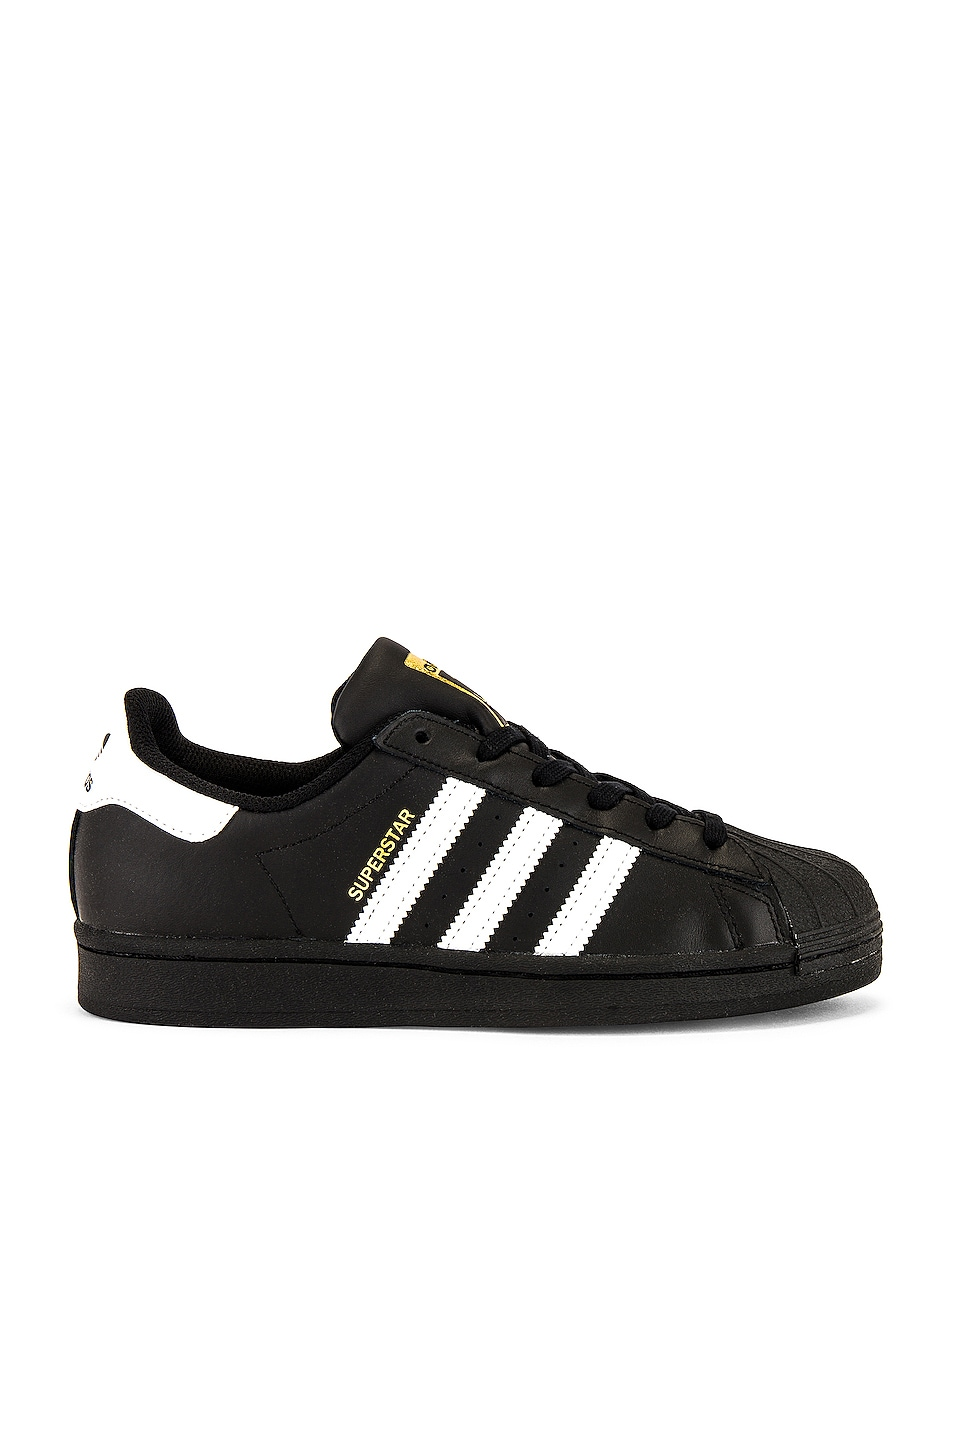 Image 1 of adidas Originals Superstar Foundation in Black & White & Black